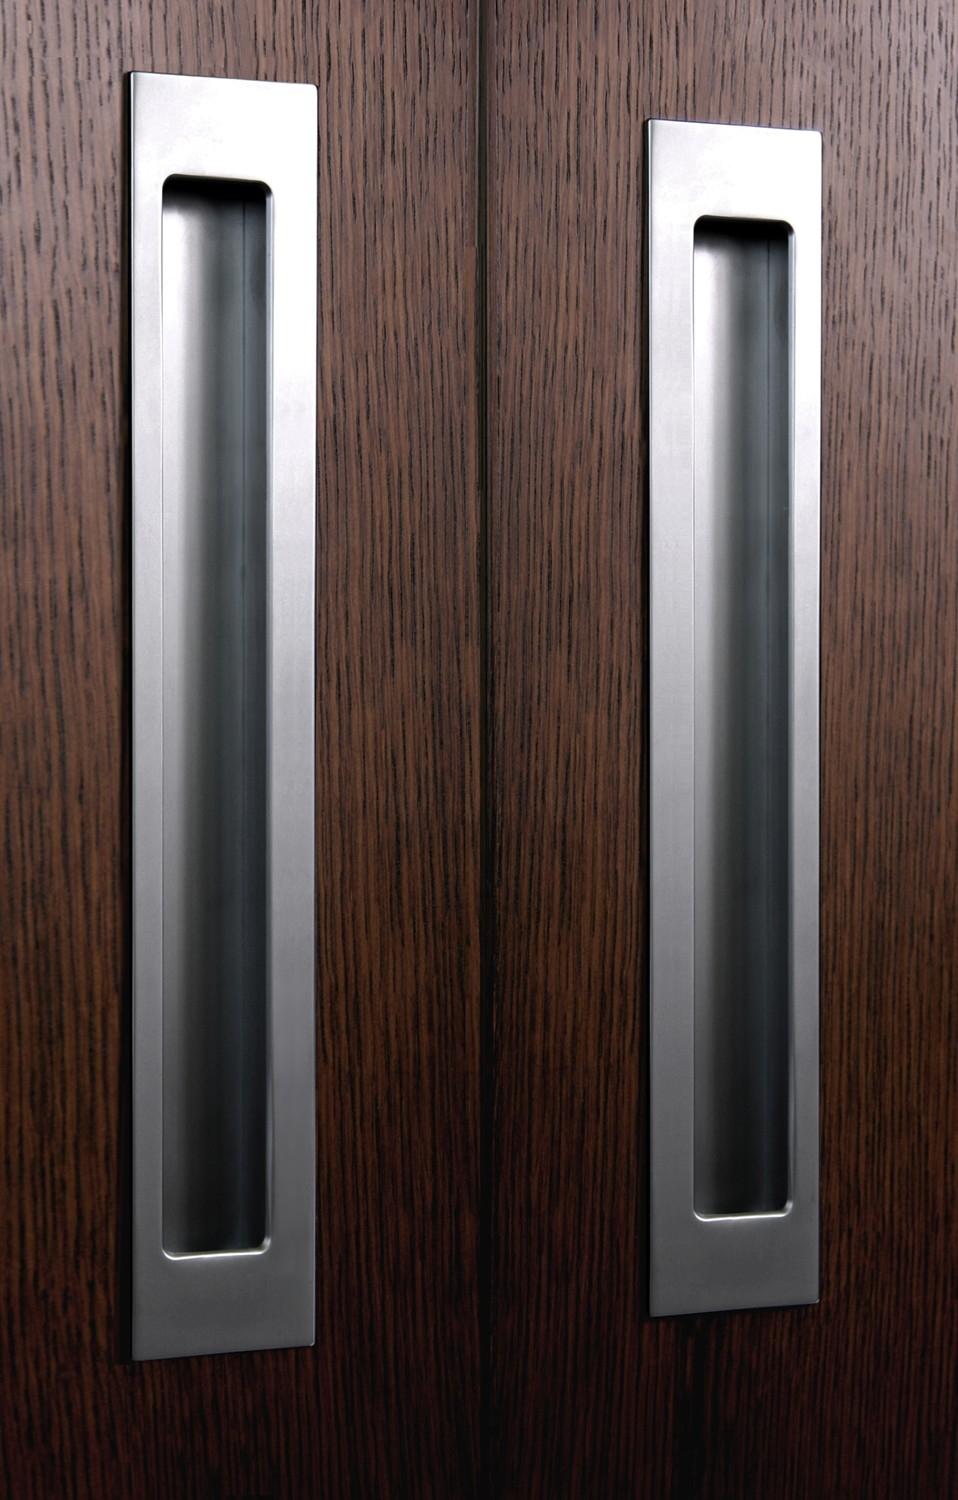 Flush Pull Handles For Sliding Doorssliding door recessed handles saudireiki